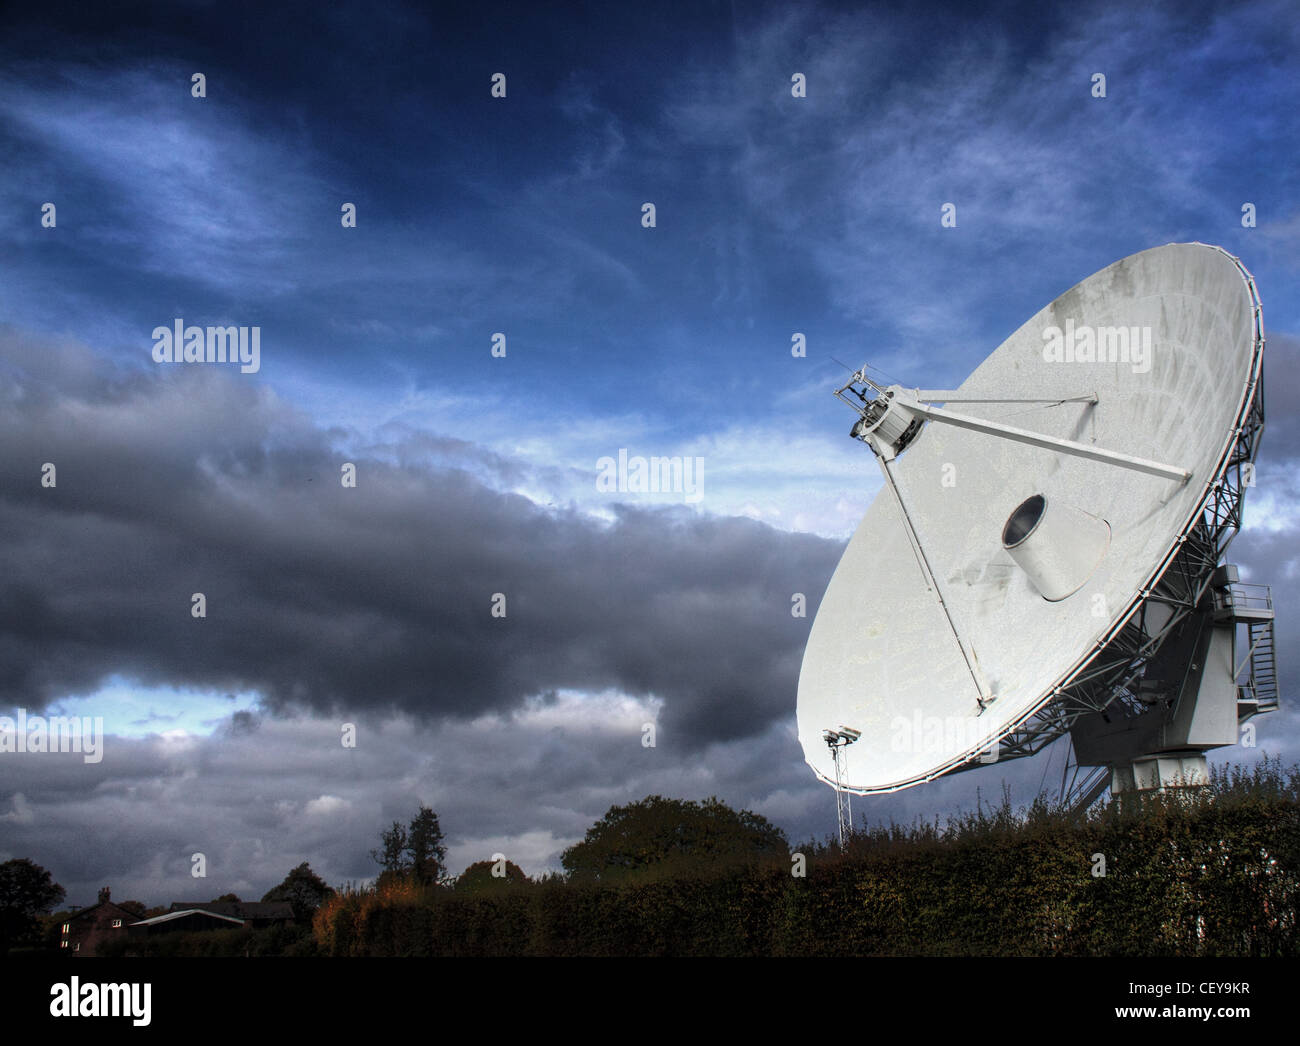 The Plumley Radio Telescope, near Northwich, Cheshire, North West England, UK - Stock Image